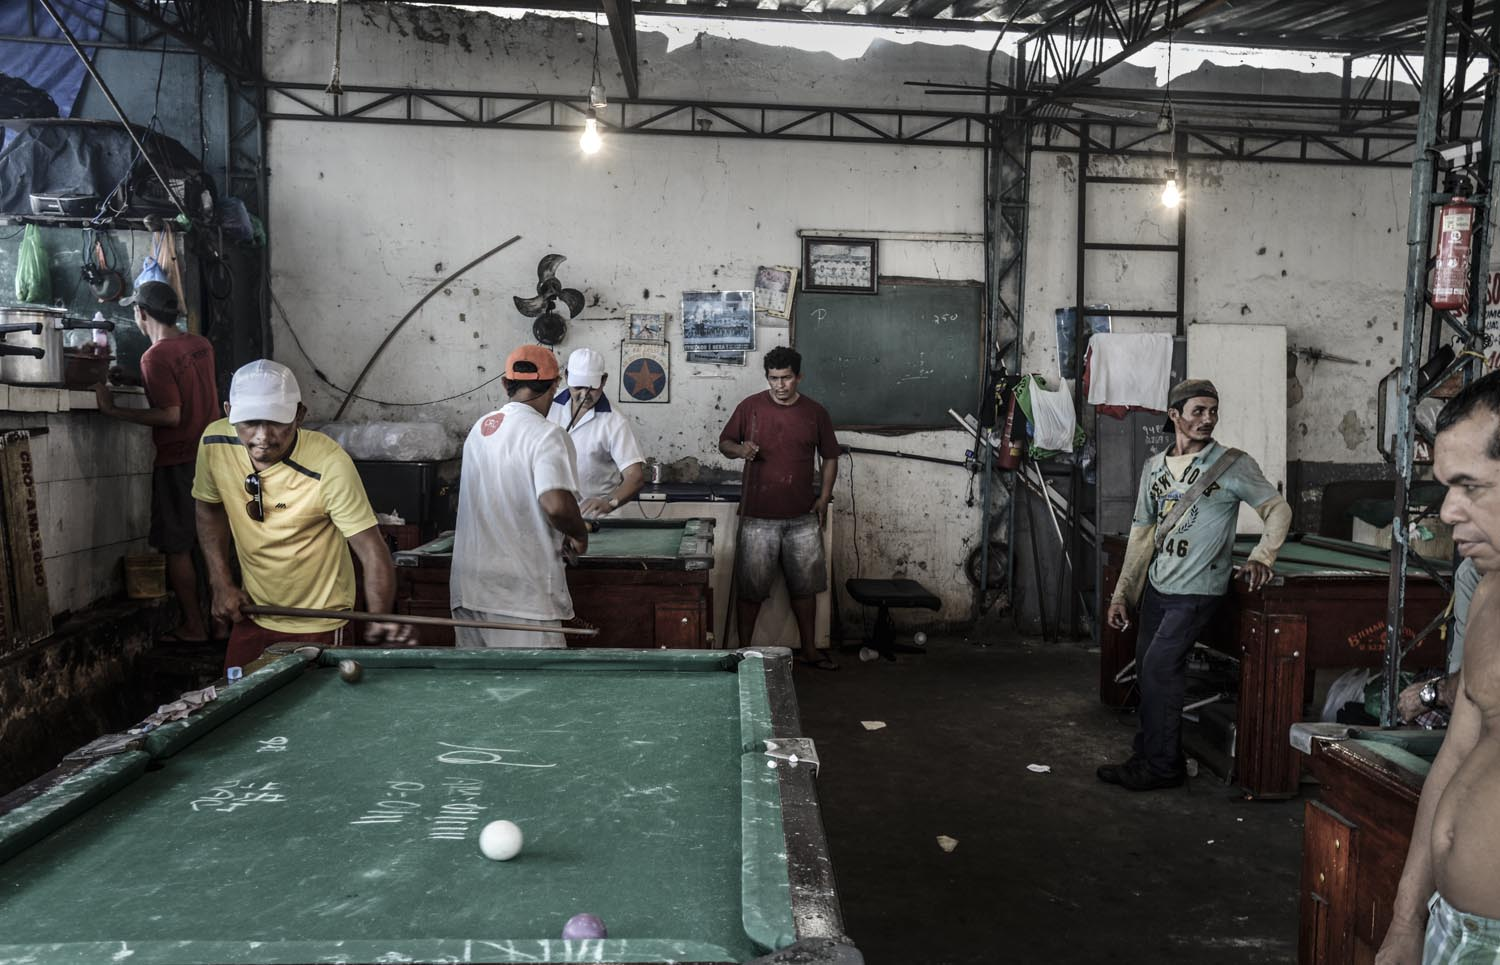 Men play pool at a local bar, Amazon, Brazil.